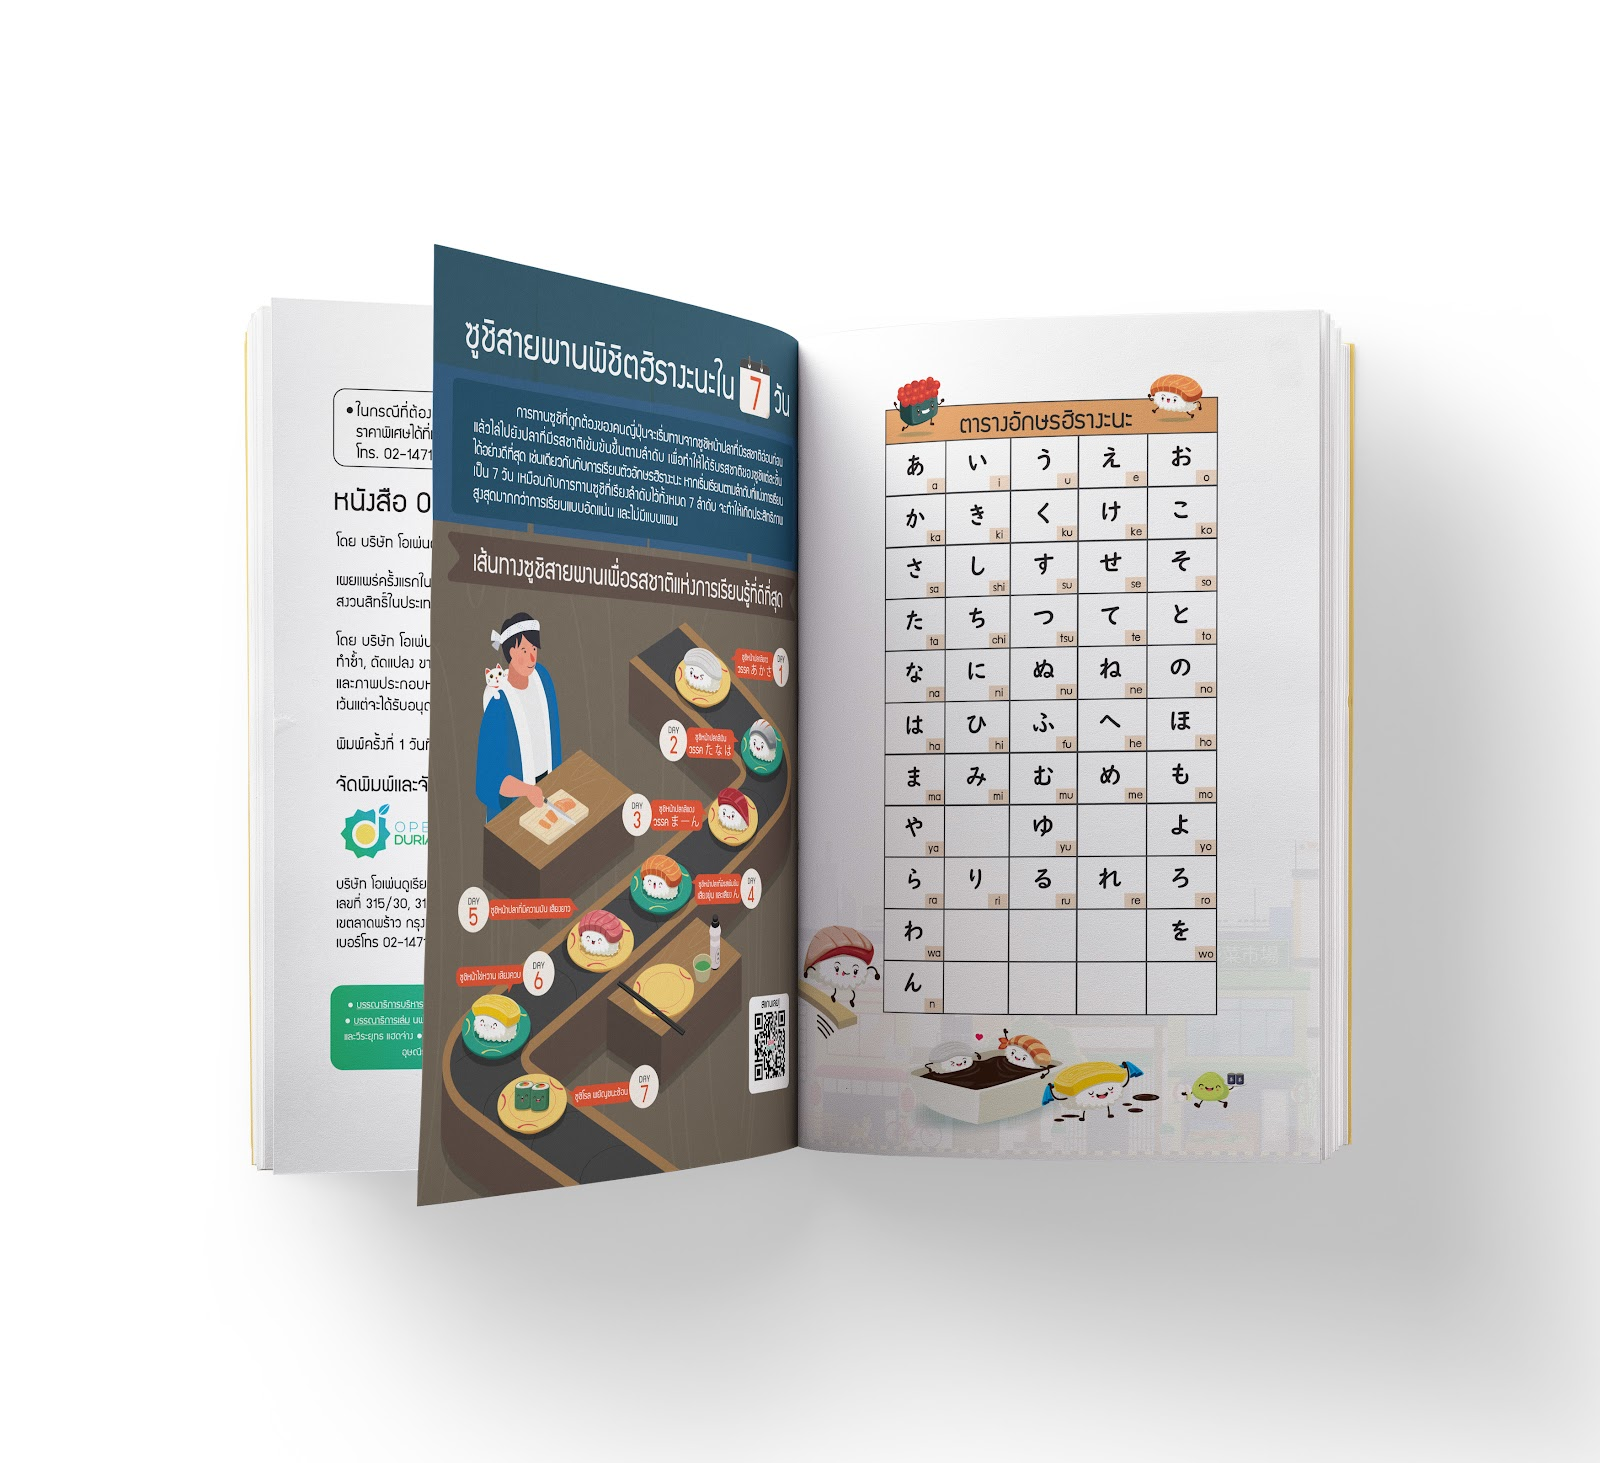 Oh! Easy Hiragana book divides the study plan into 7 days like sushi eating order in Japanese for the best performance of learning.